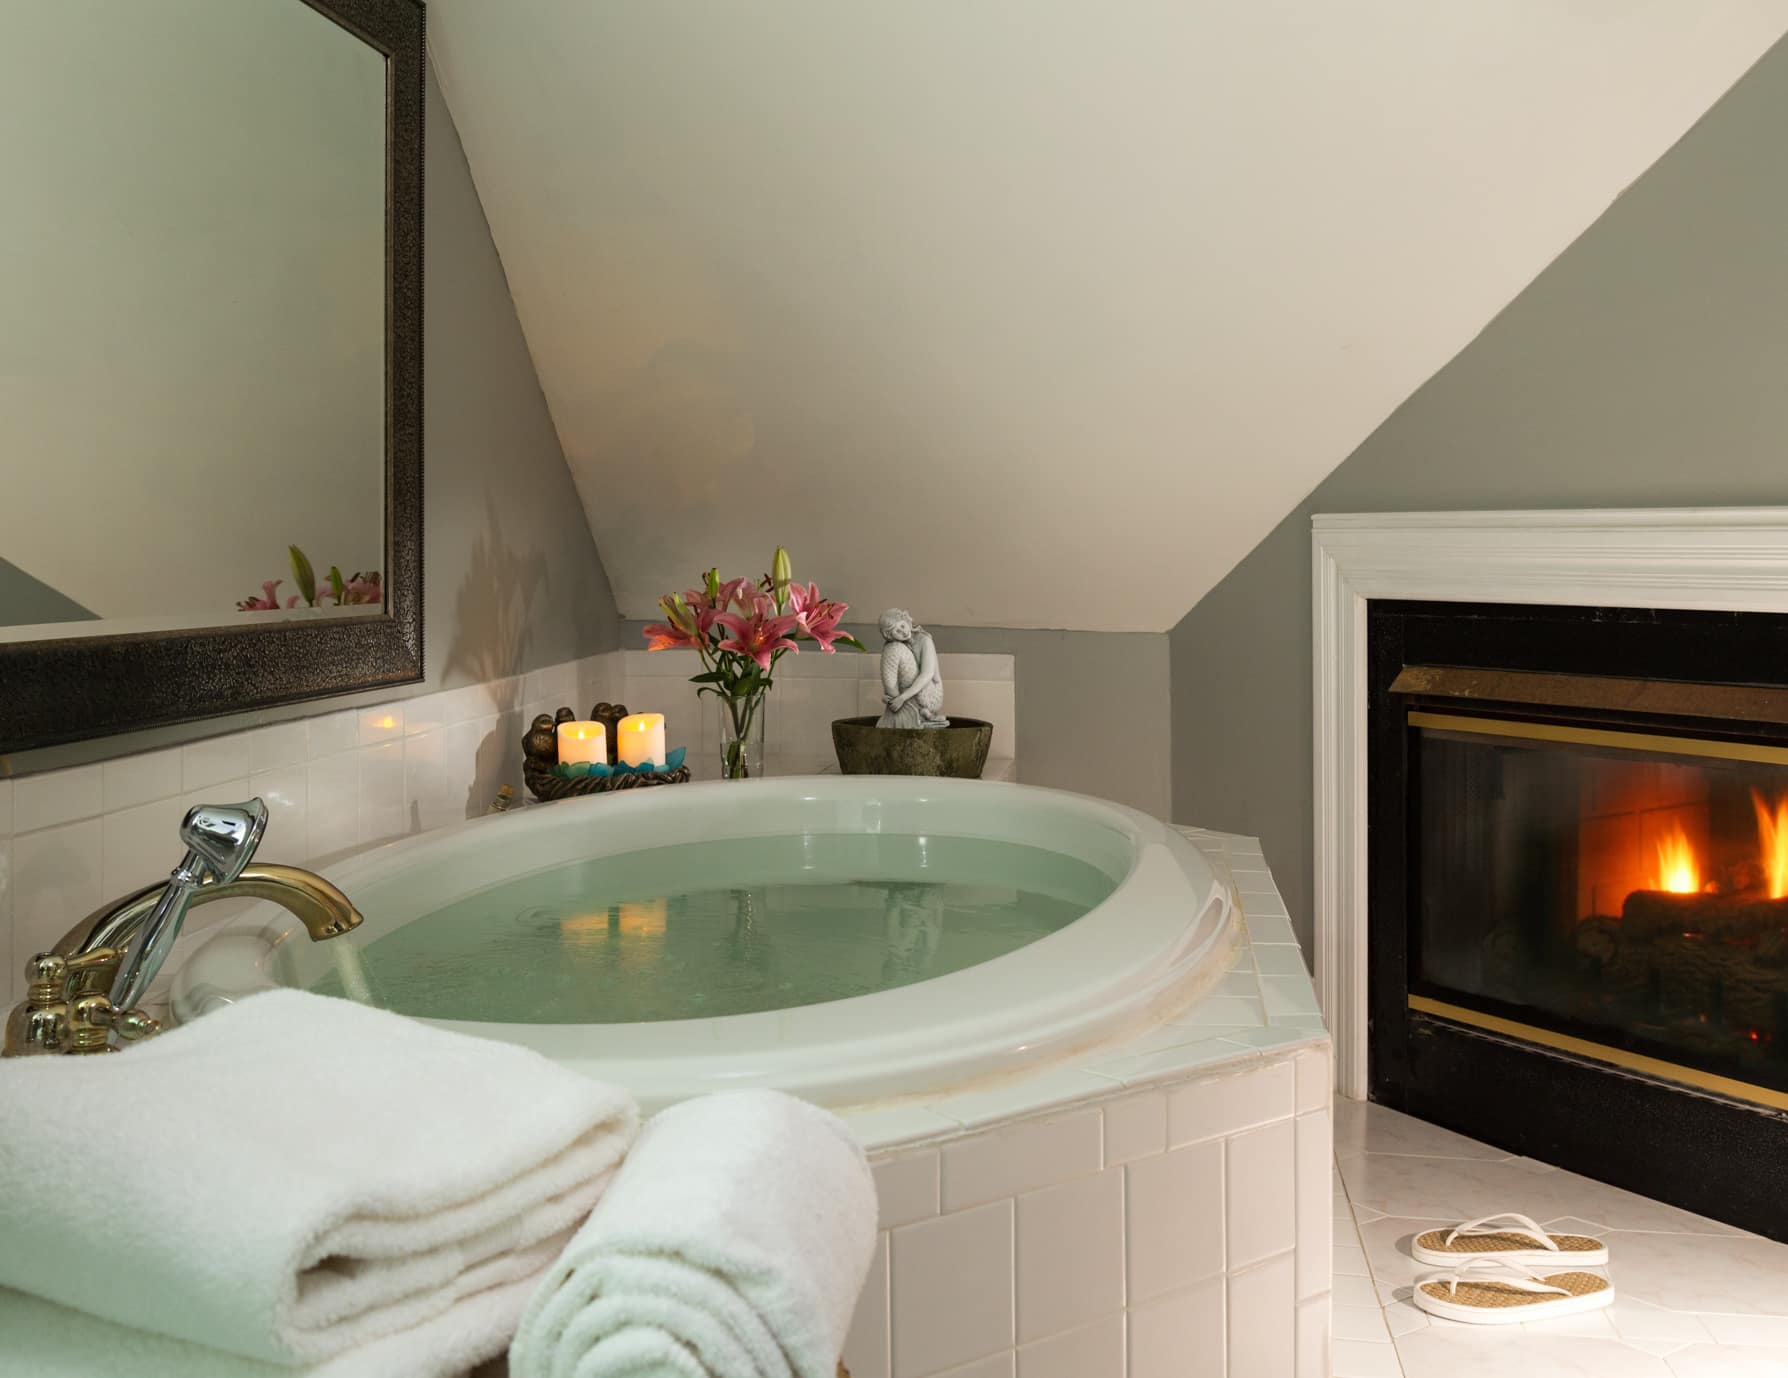 Outer Banks, NC Inn Jetted Tub and Cozy Fireplace